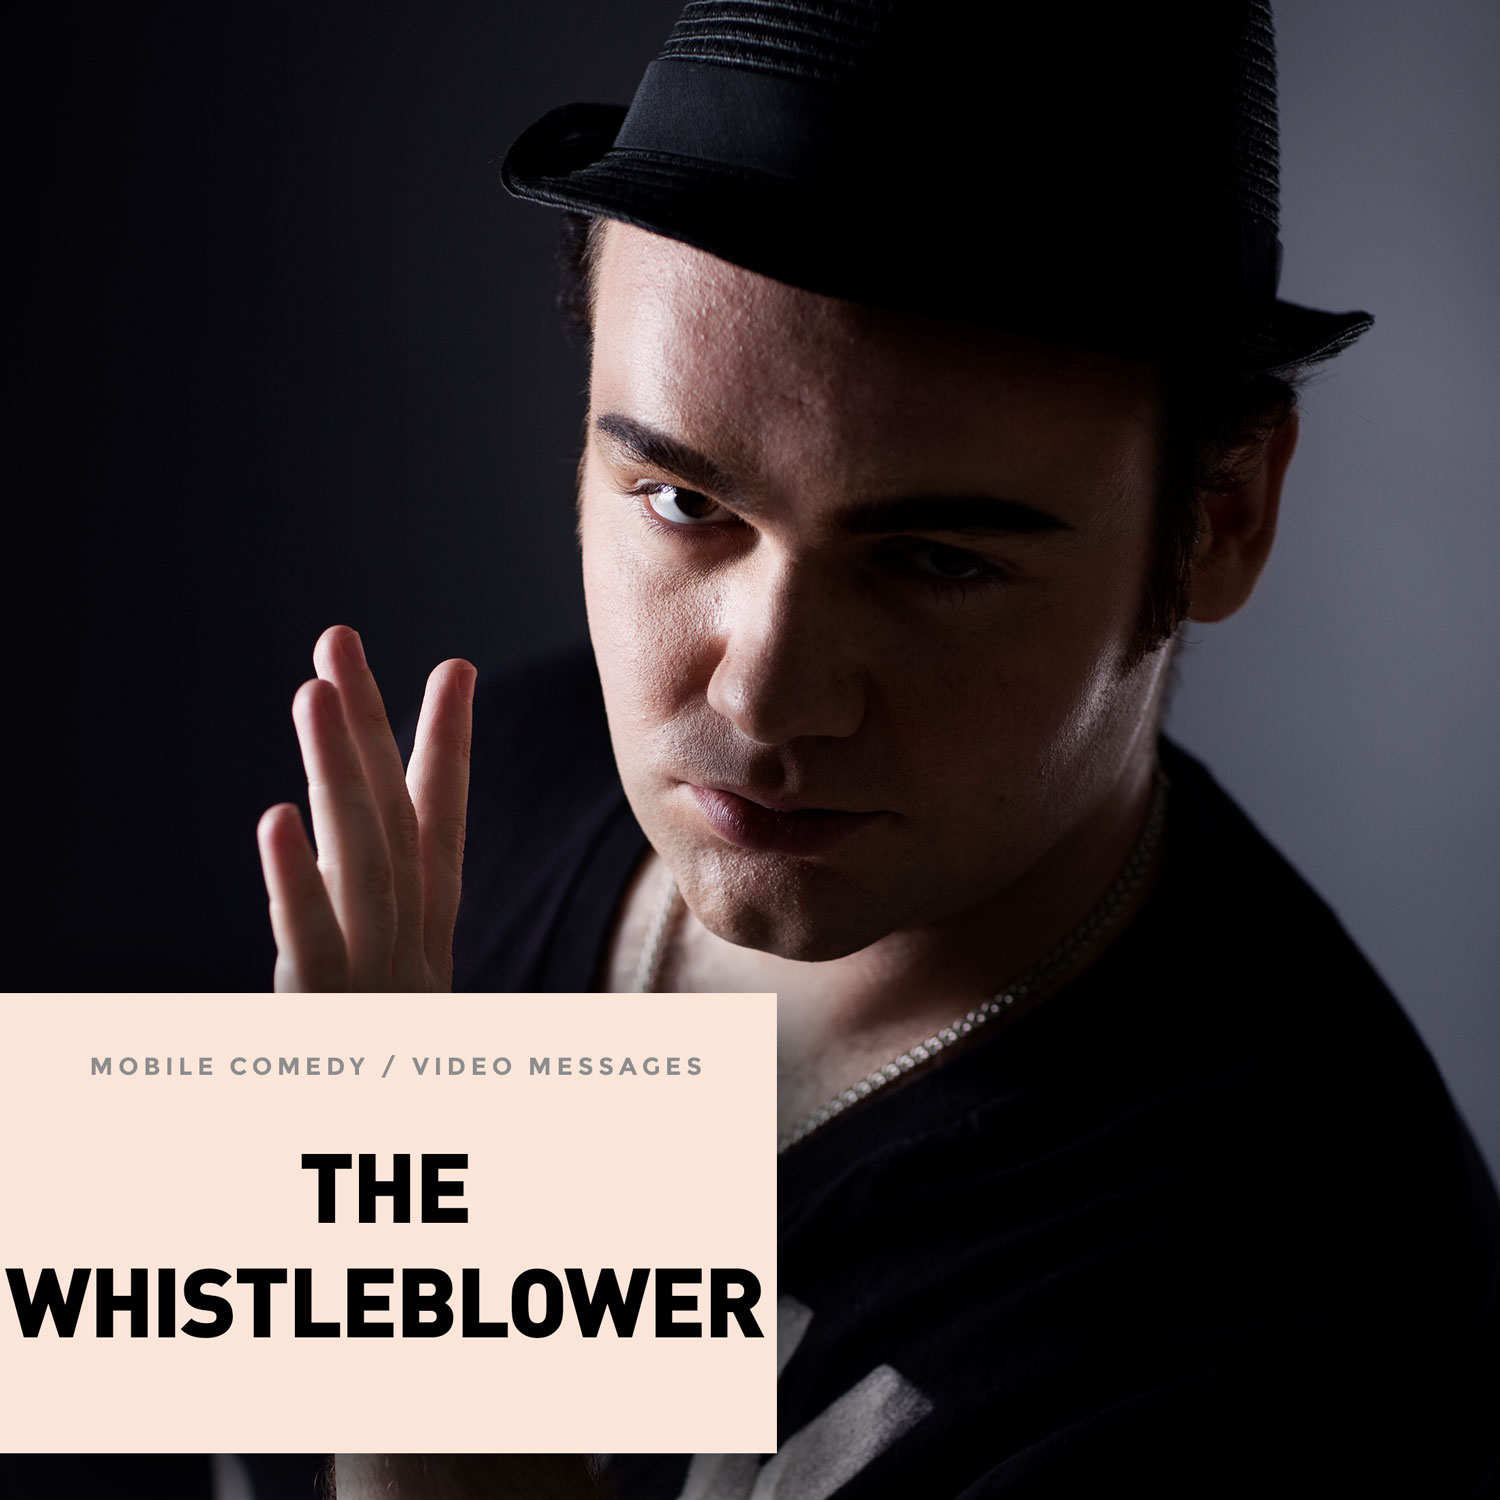 Discover the Whistleblower collection with Jeff, a know-it-all kind of guy who's paranoia is as large as he's convinced his goods are. He believes that power cords will cook him from the inside out if he stands too close to them, and he fired his barber because the guy was trying to kill him.